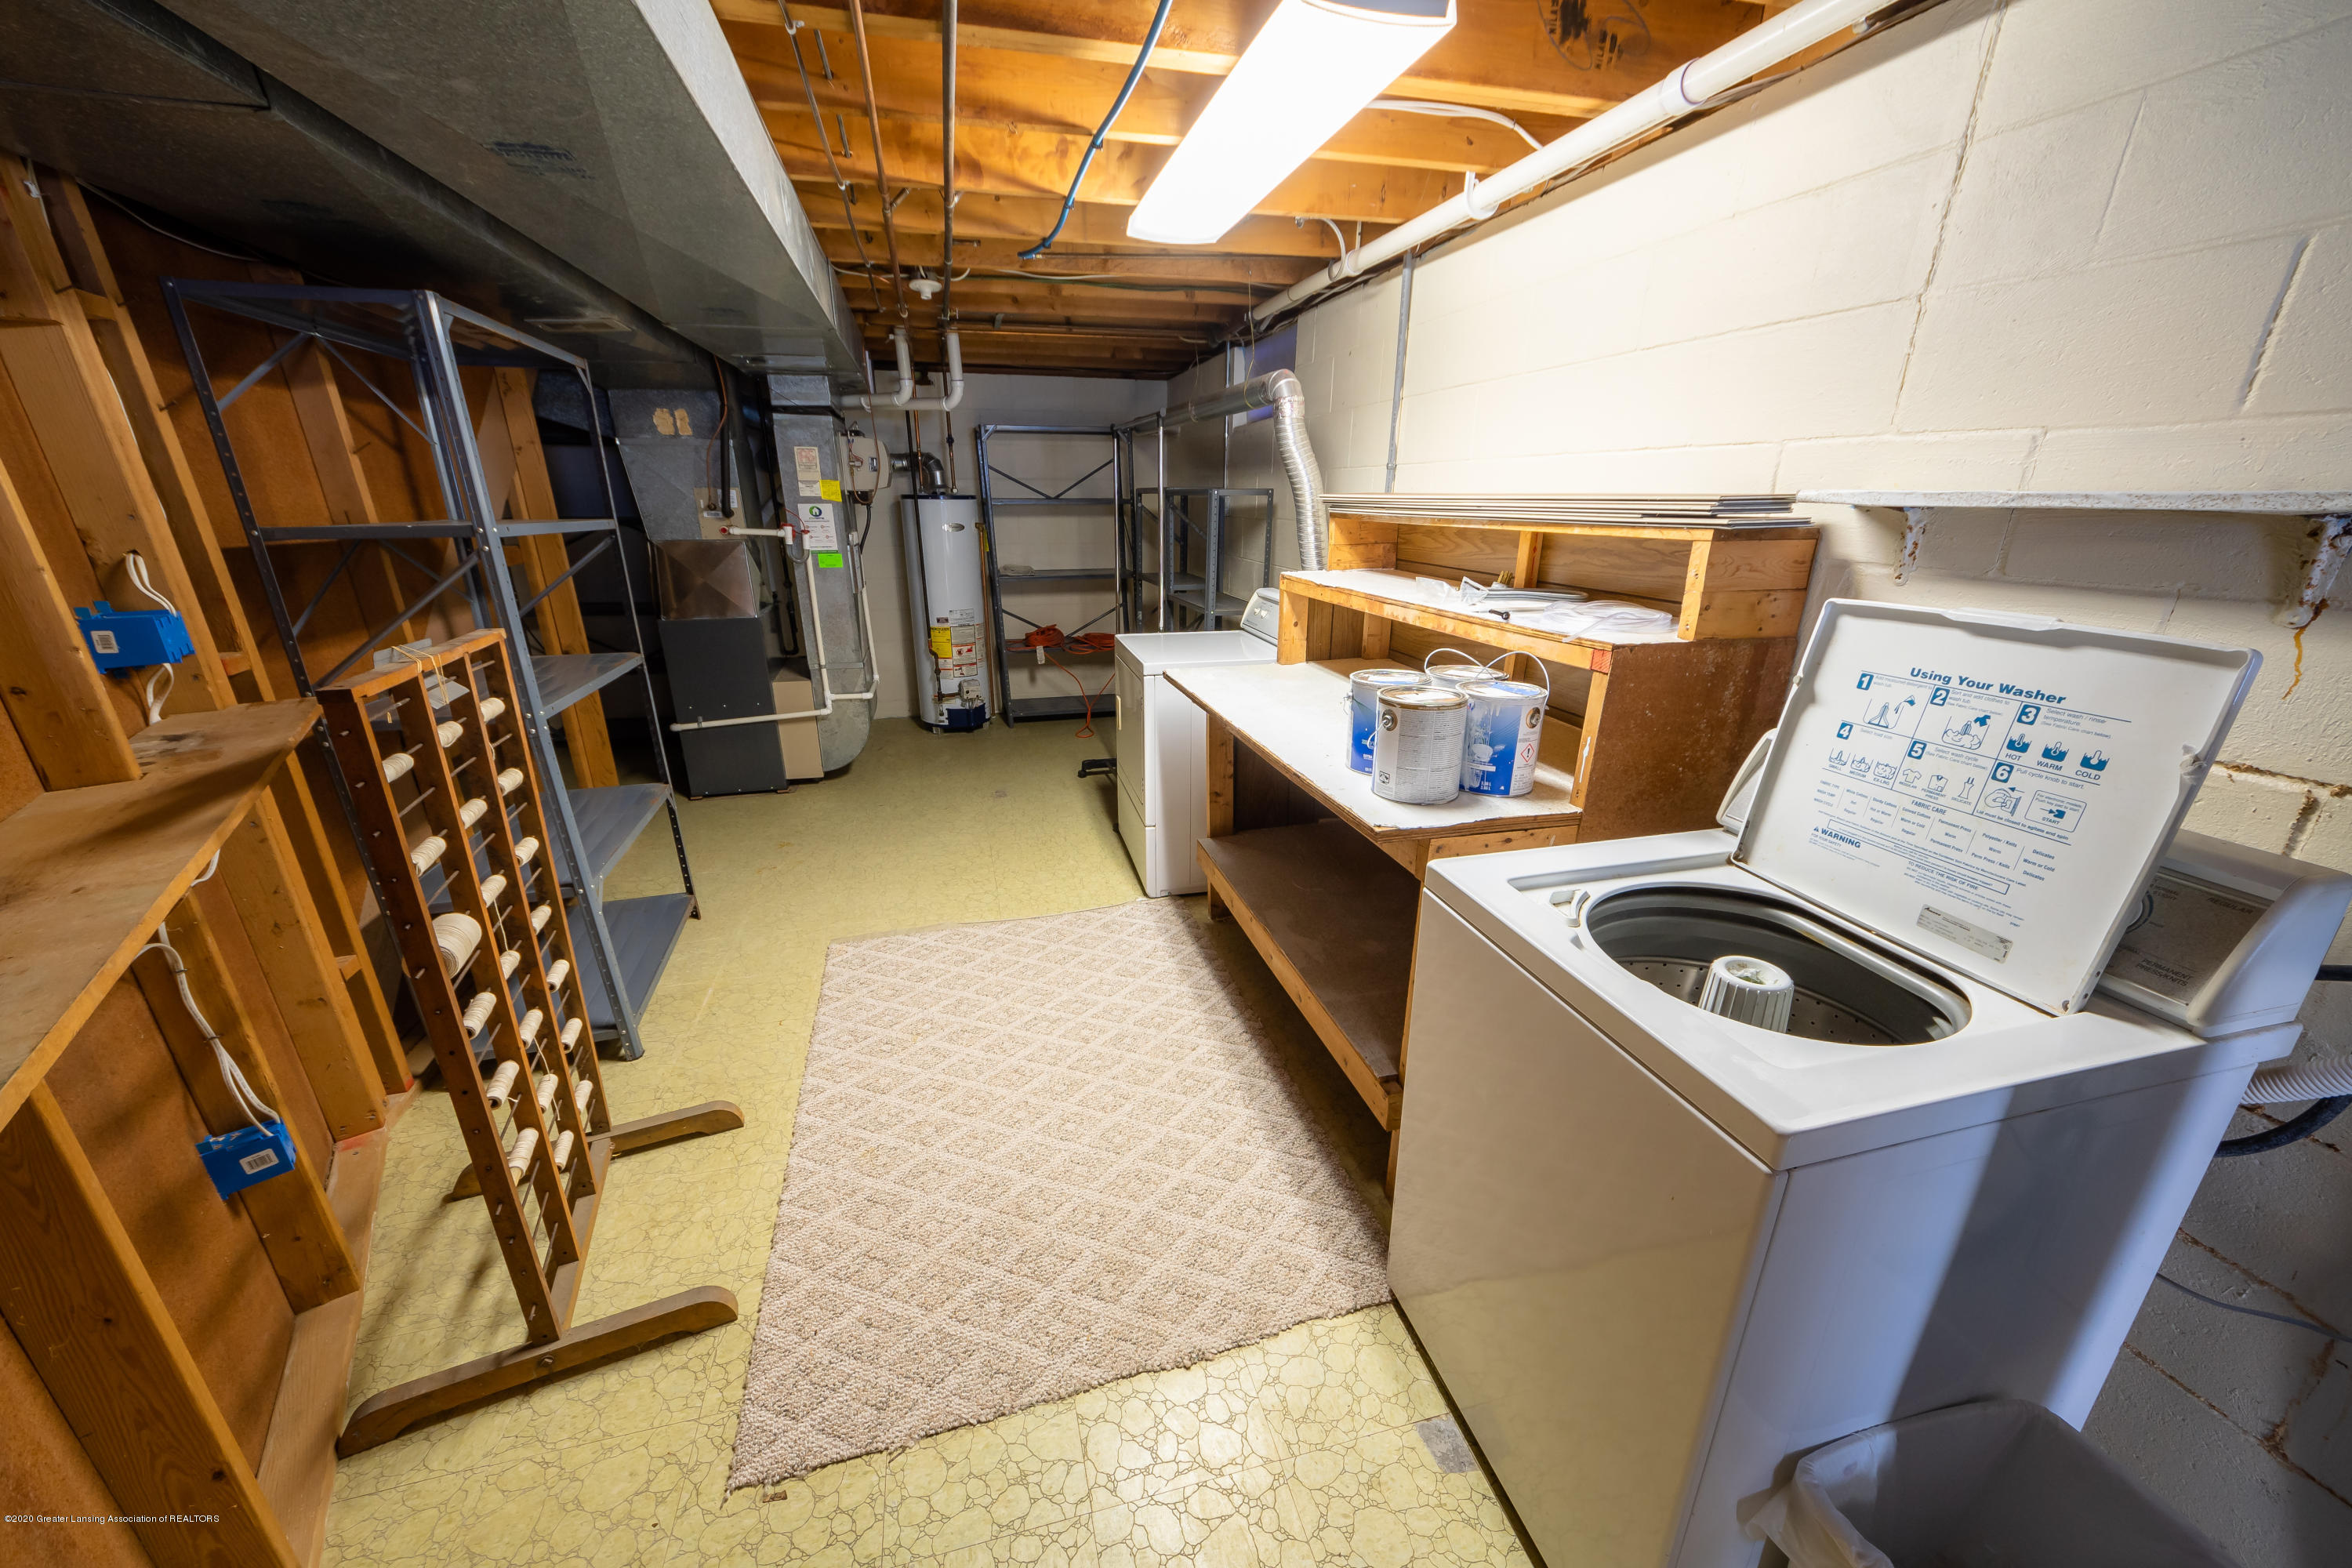 1480 W Herbison Rd - Laundry - 20